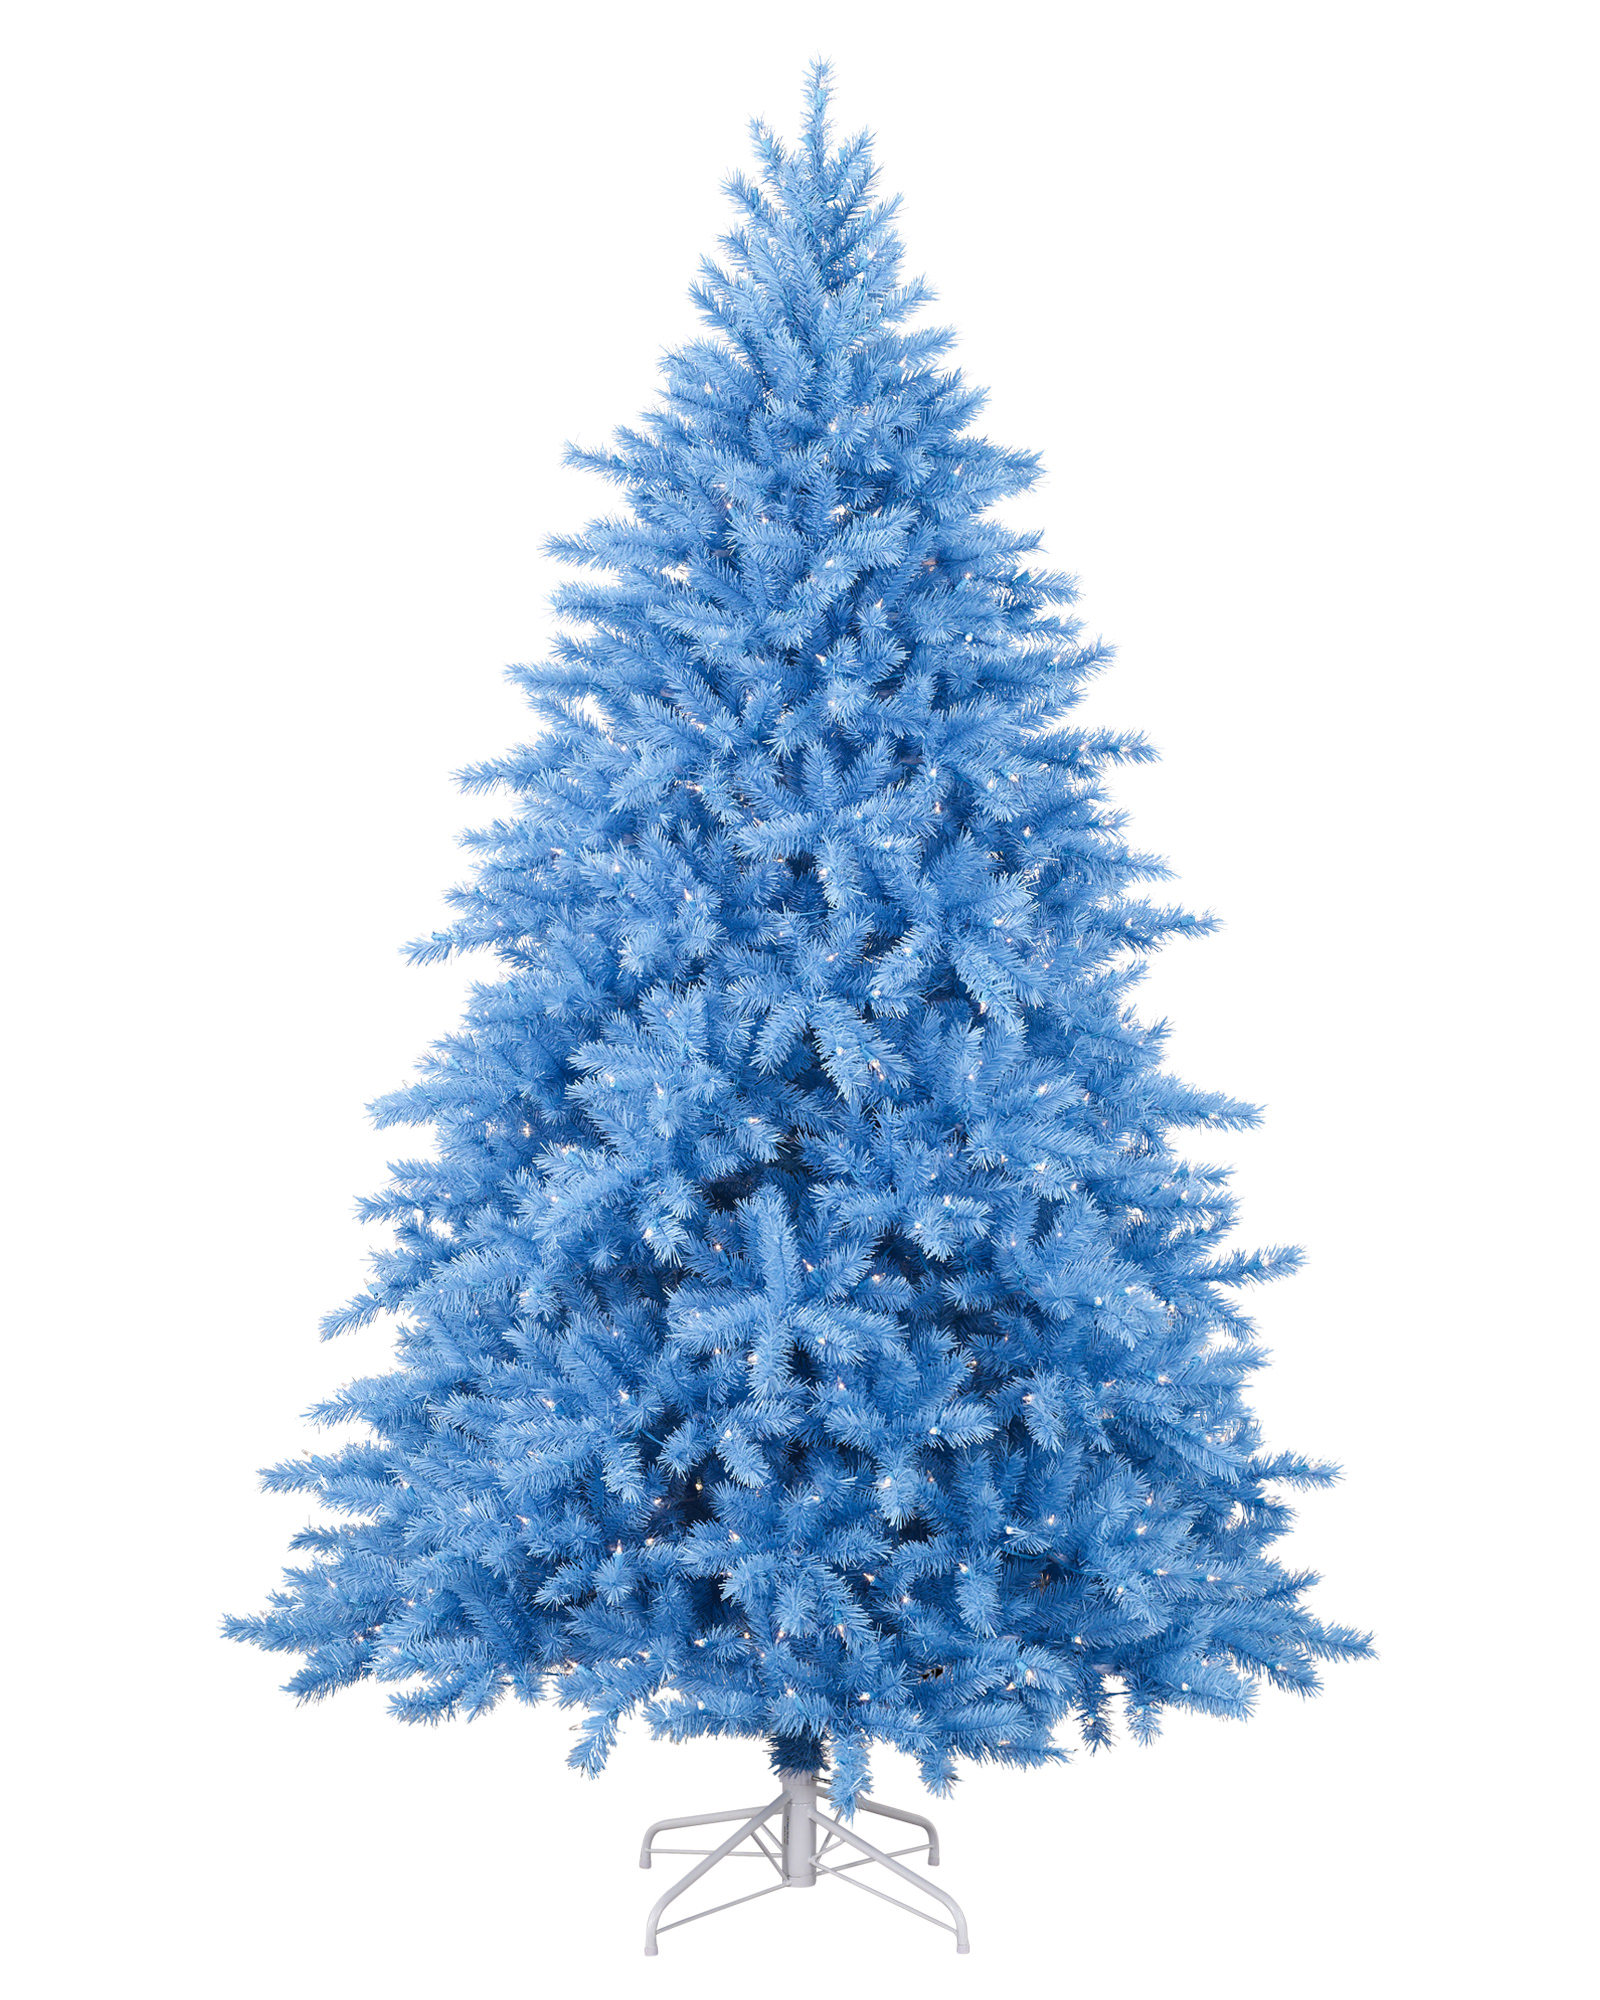 Baby Blue Artificial Christmas Tree | Treetopia